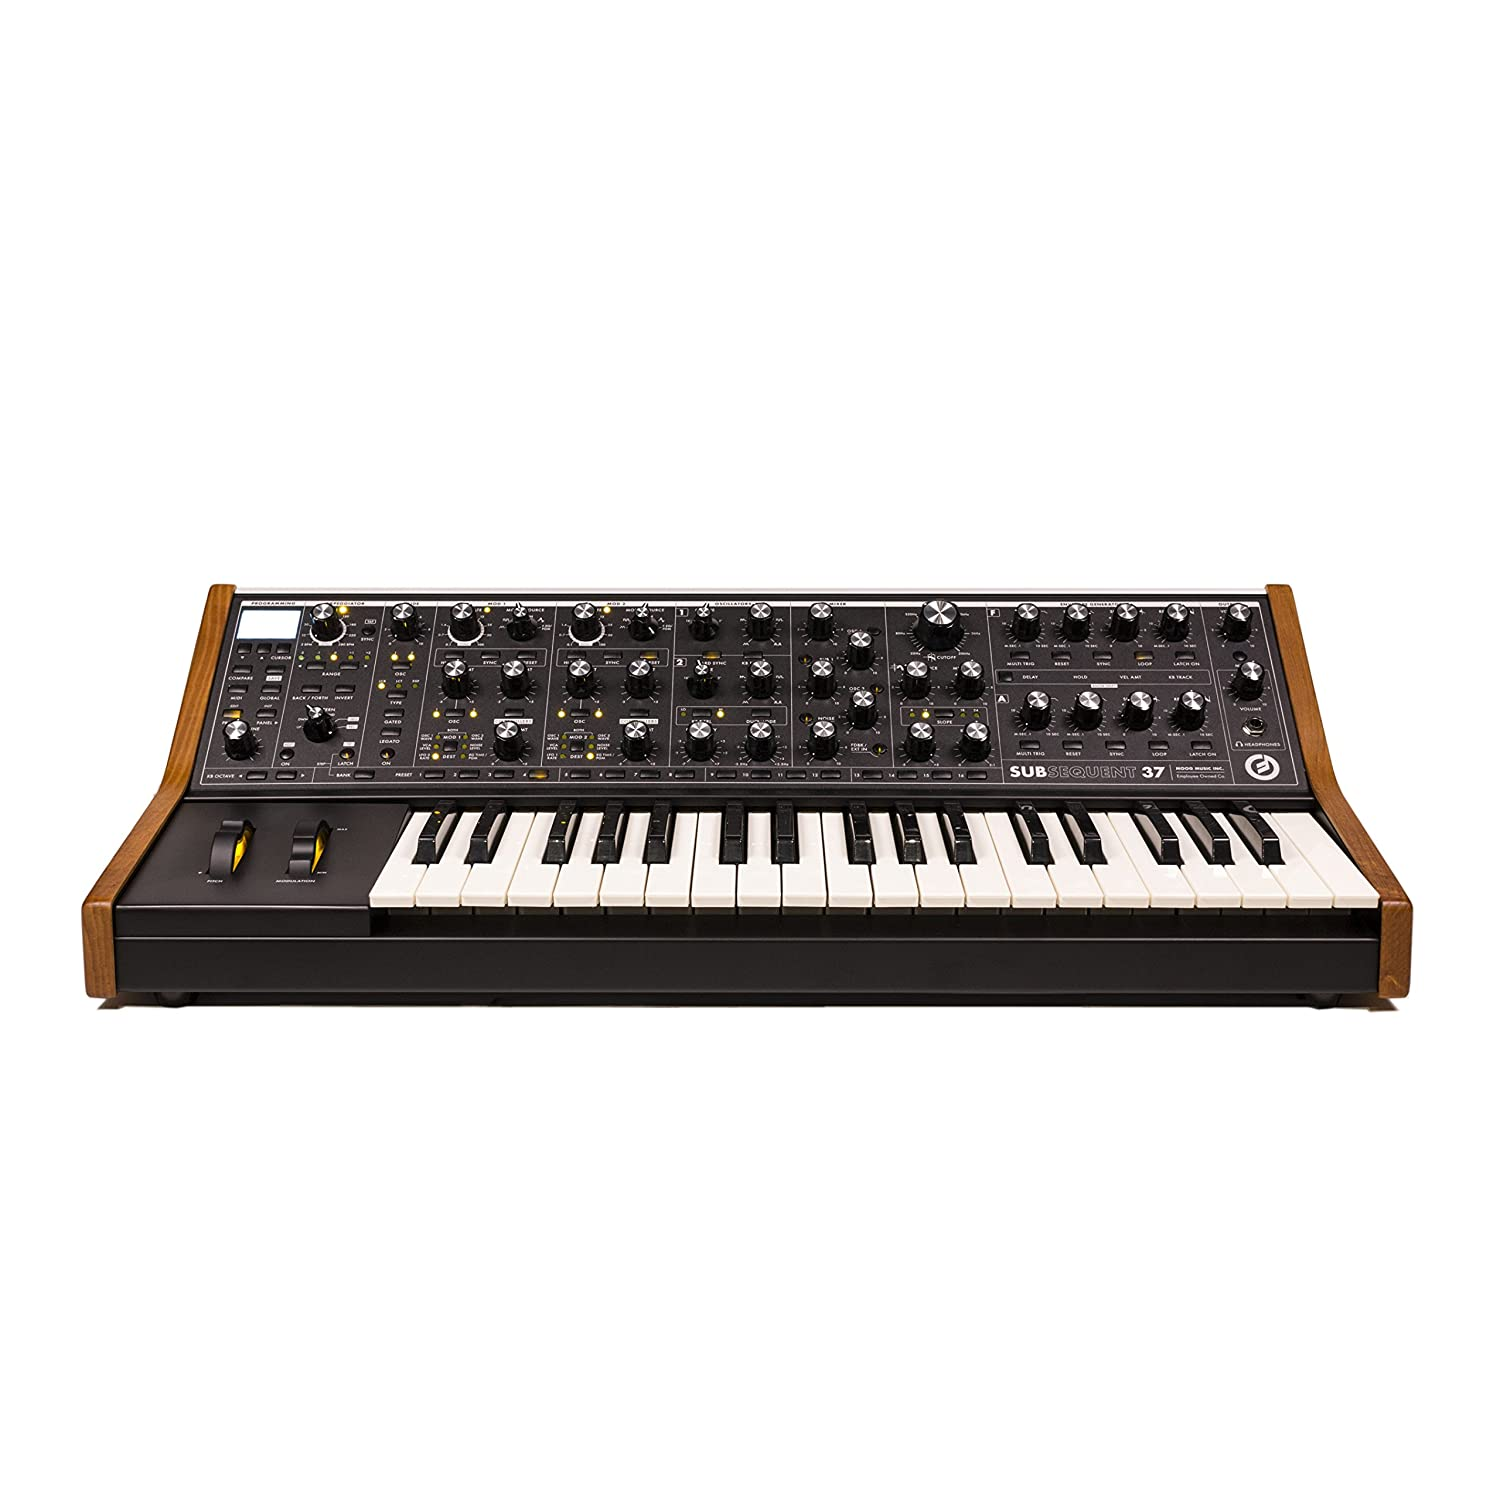 Subsequent 37 Moog Music LPS-SUB-006-01